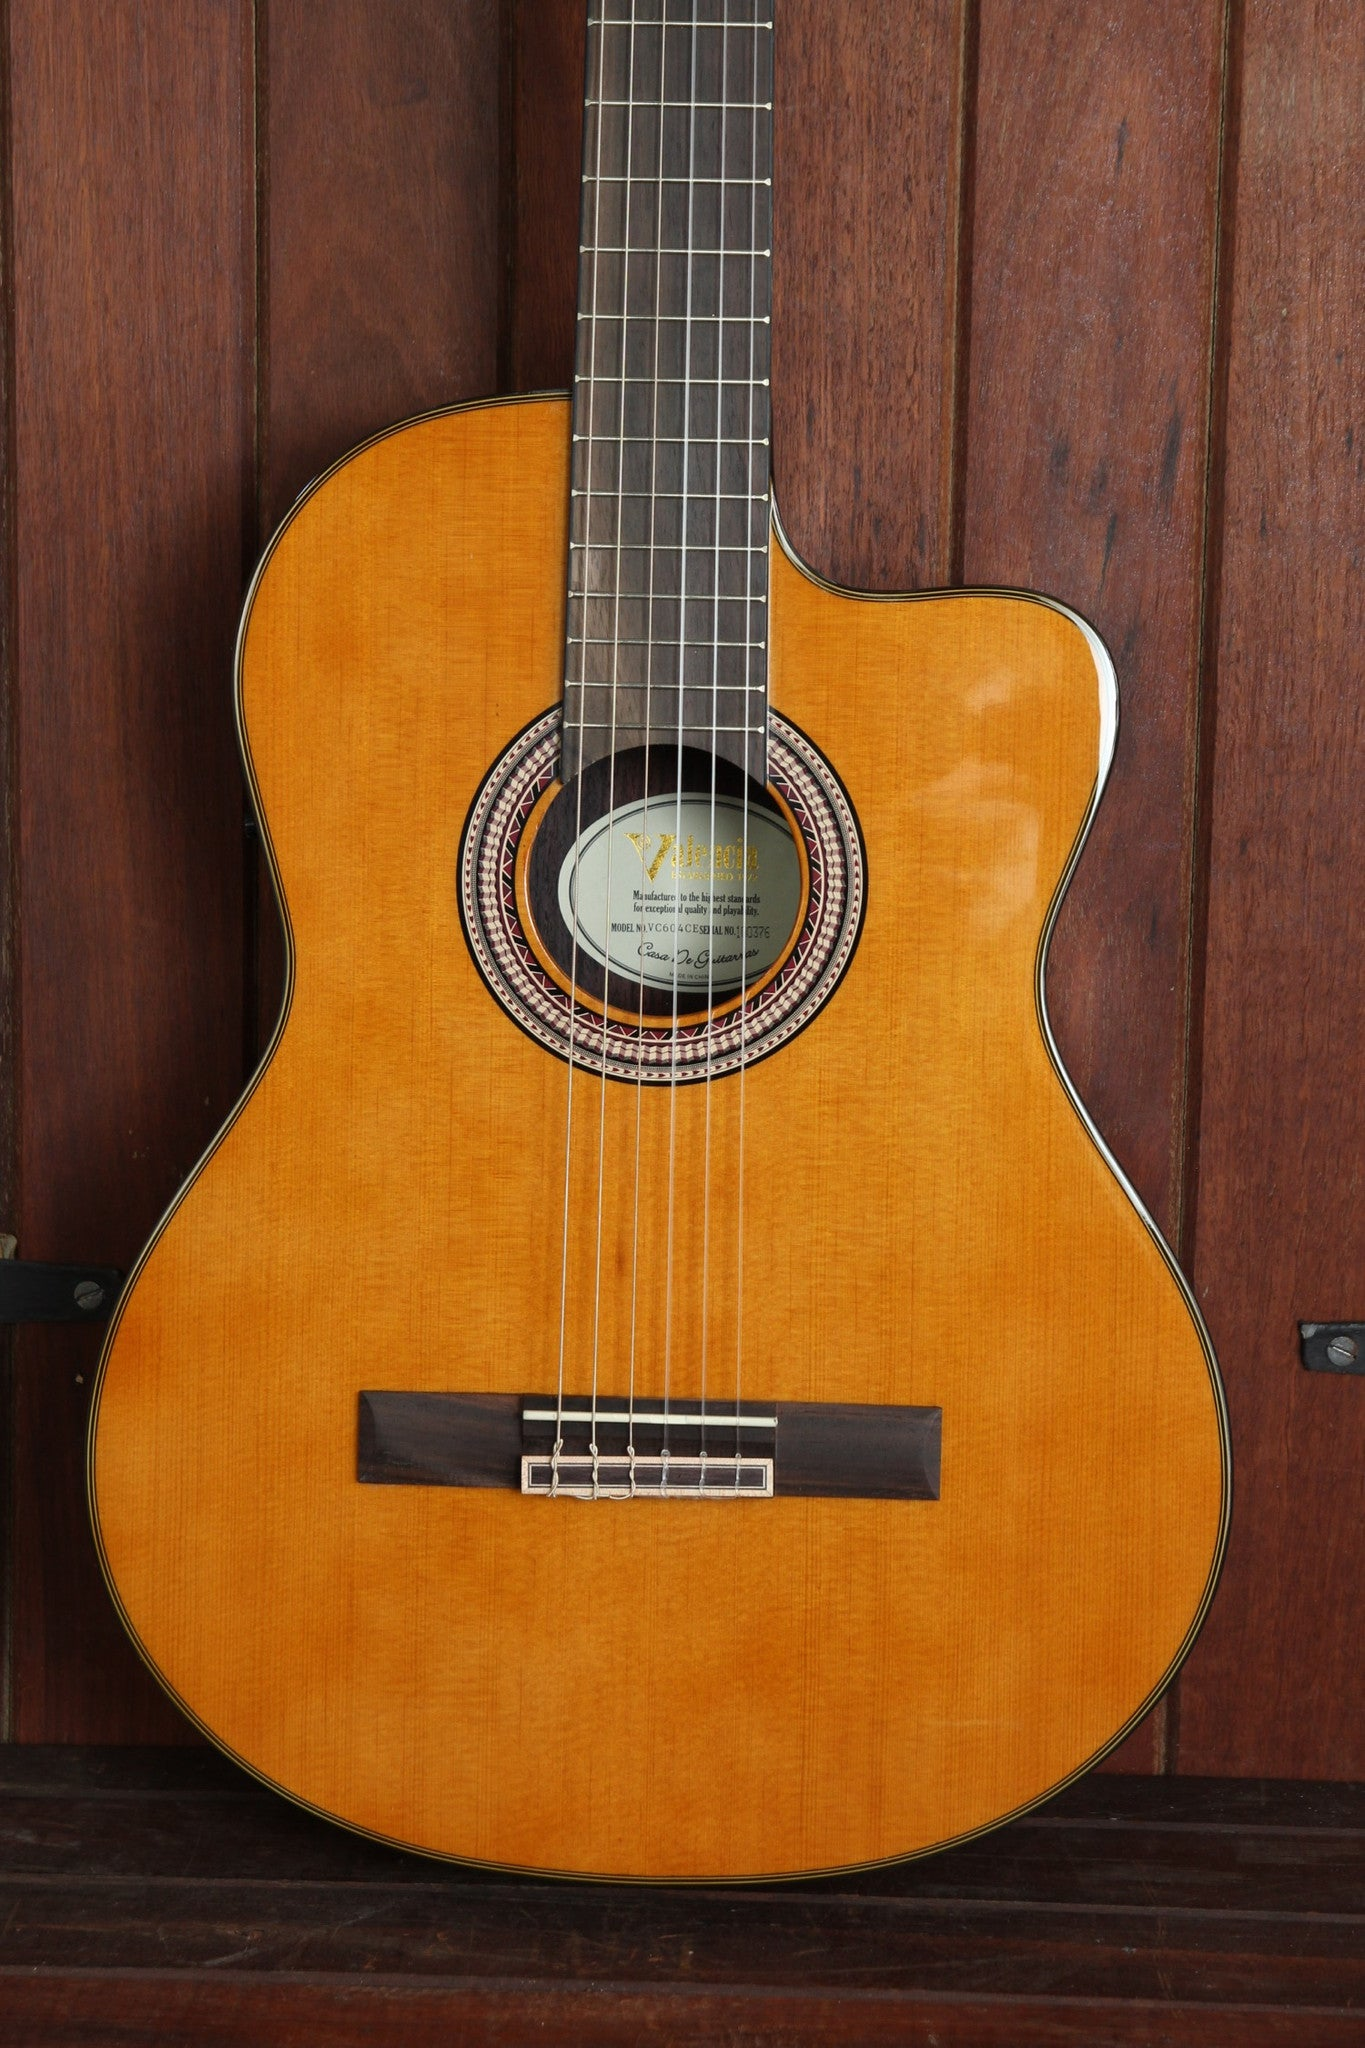 Valencia VC604CE Acoustic-Electric Cutaway Nylon Guitar - The Rock Inn - 1